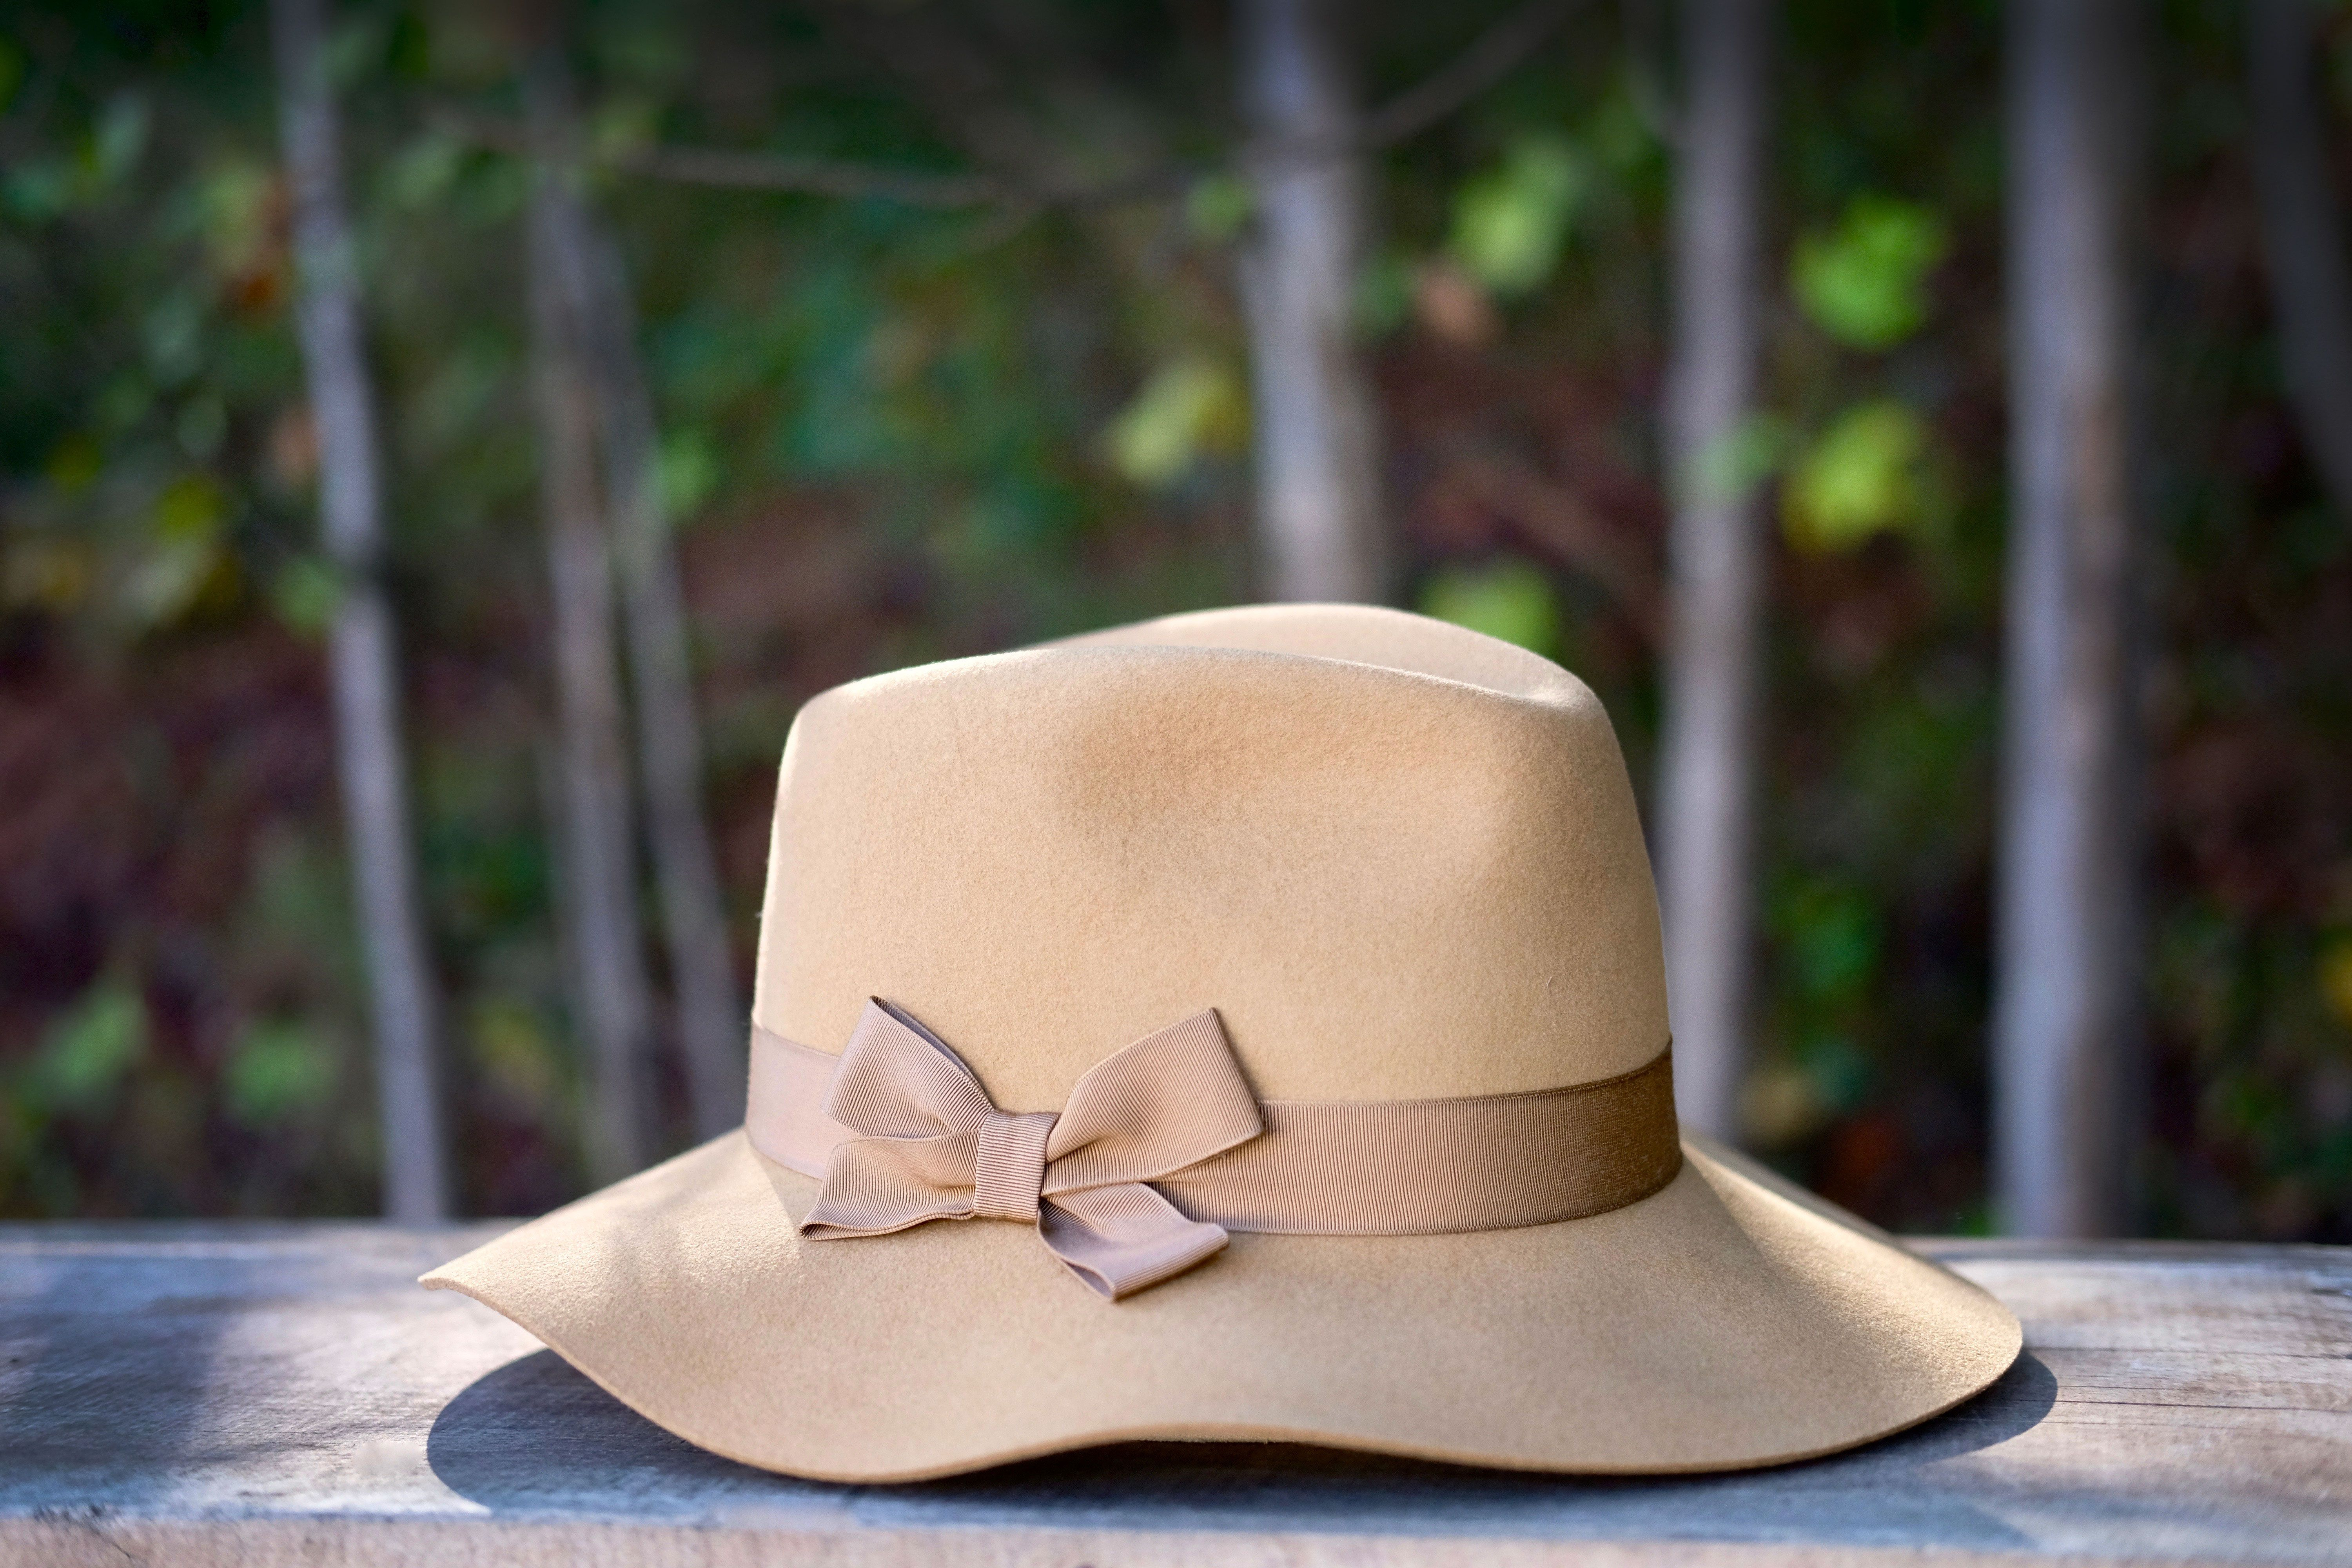 e87458cf The Gwen hat is a unique women's style. It has a wide brim and a feminine  grosgrain hatband with a bow but, the crown has a classic fedora shape to  it which ...